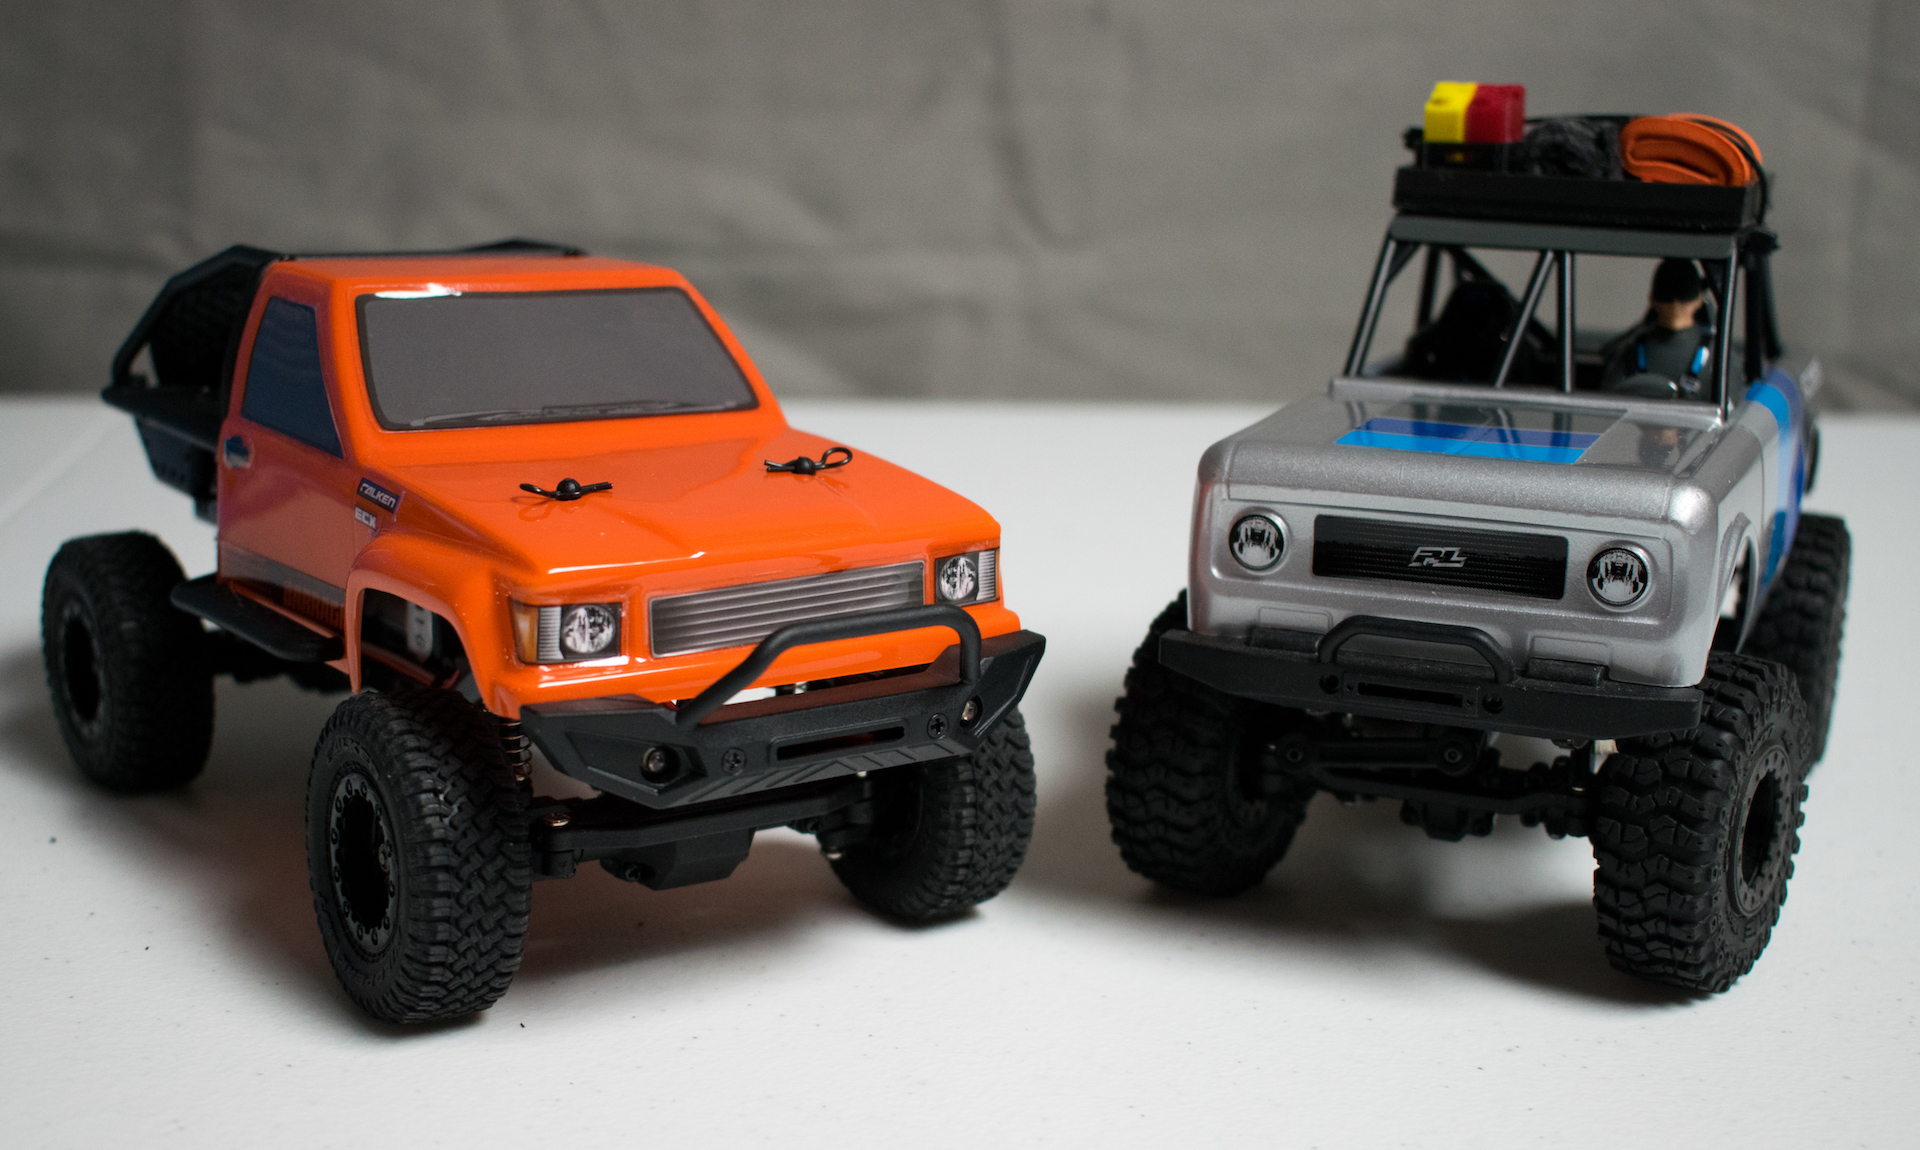 ECX Barrage 1-24 and Pro-Line Ambush